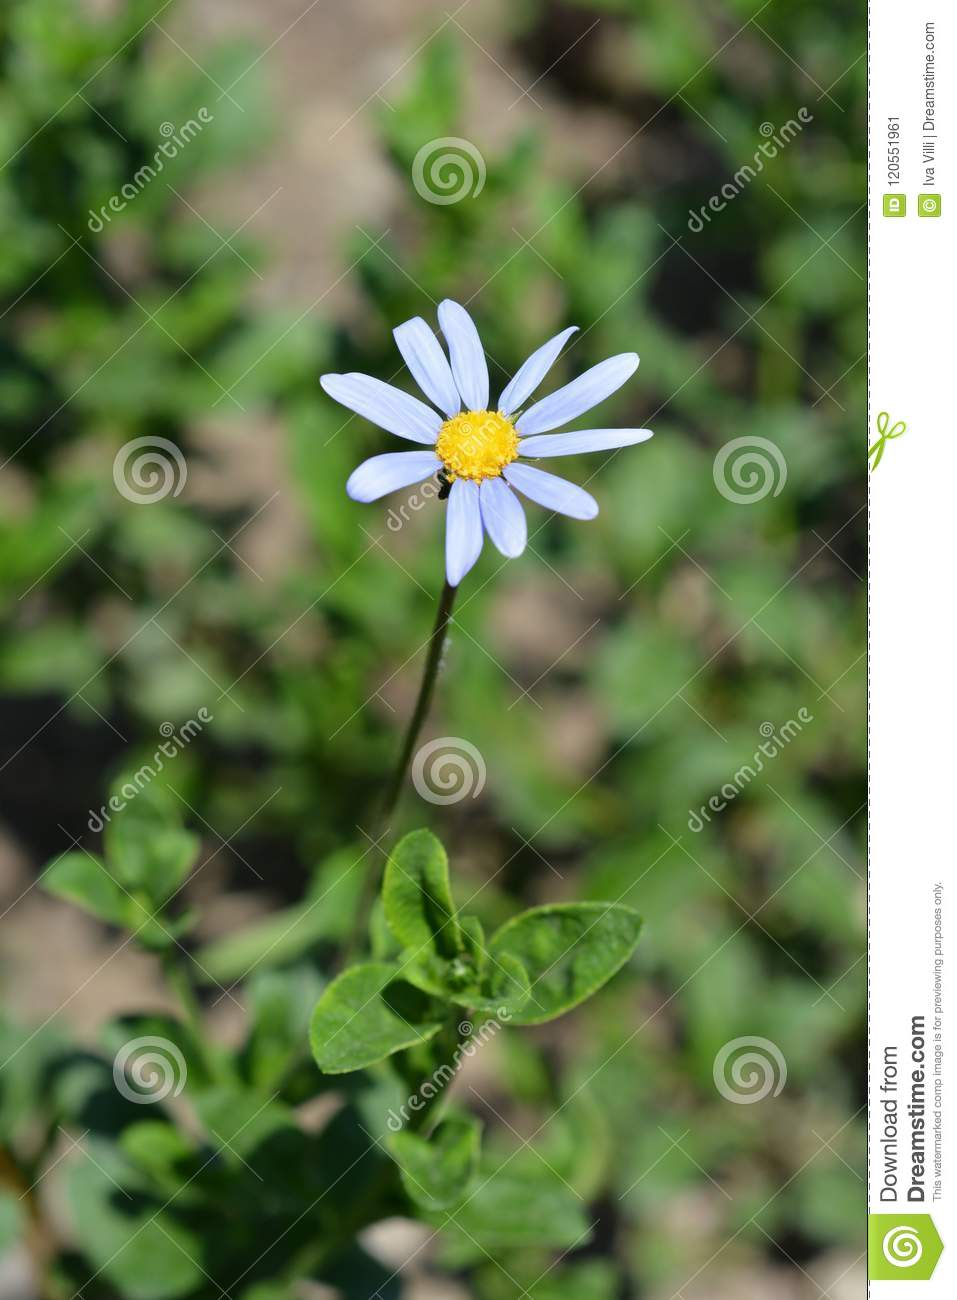 Blue daisy stock image  Image of green, plant, summer